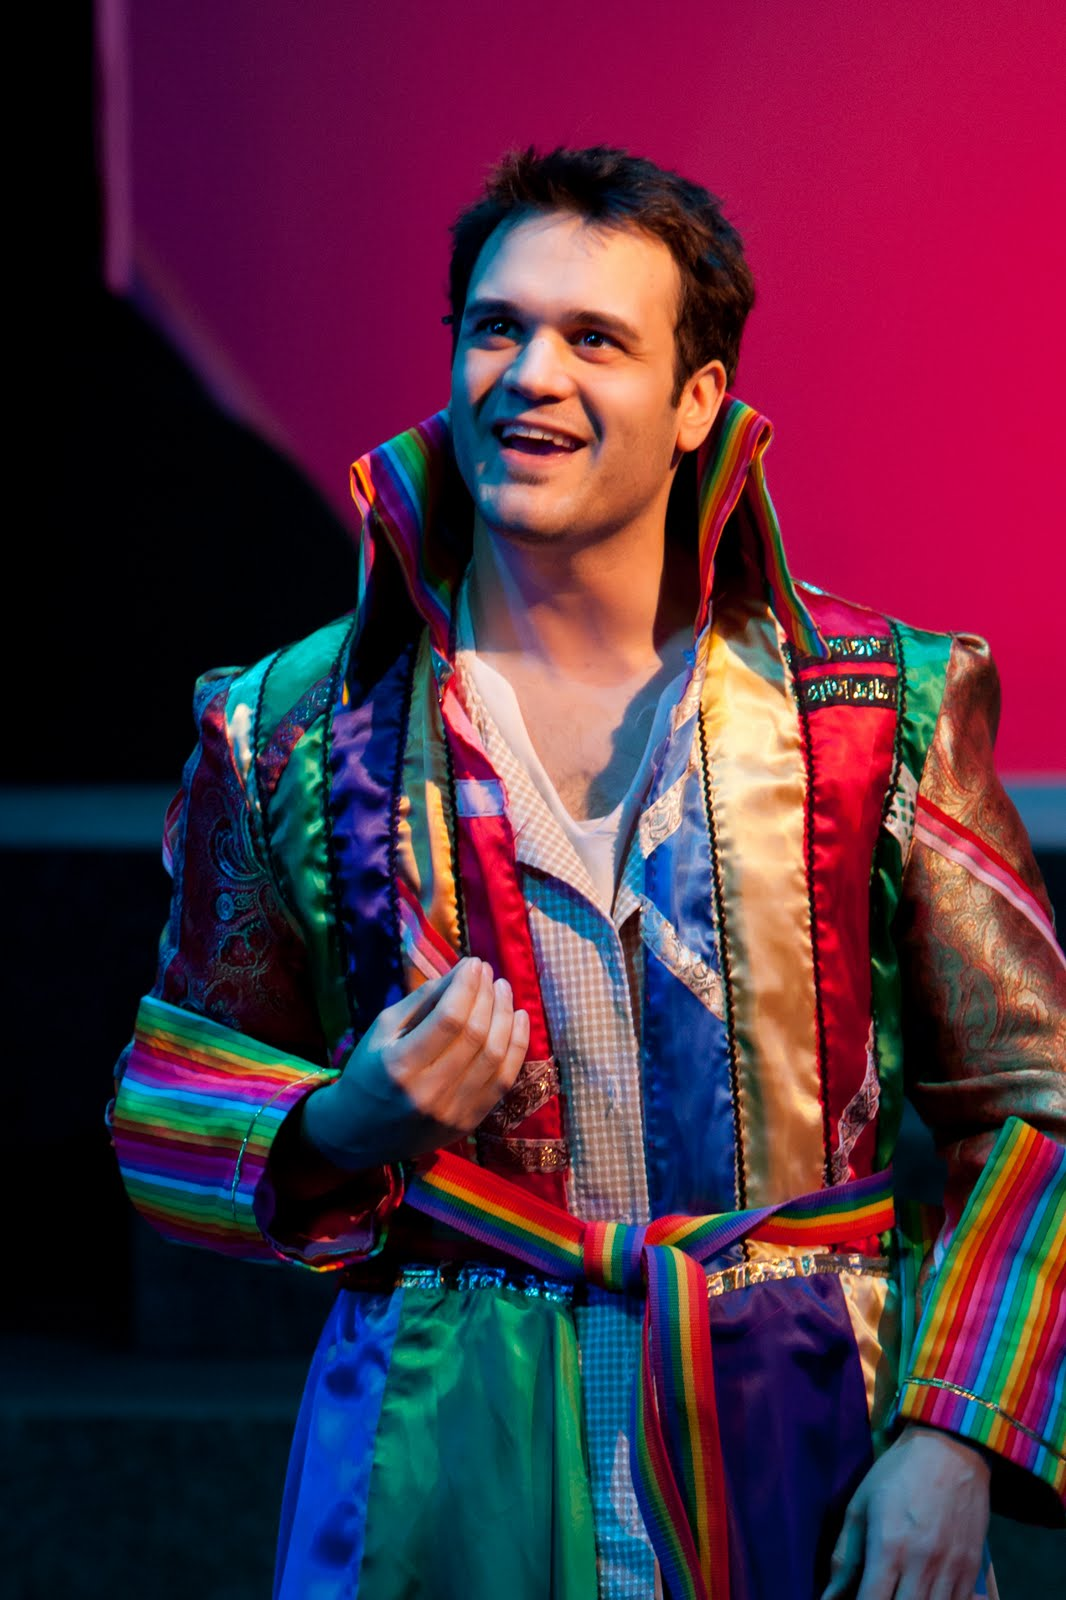 Rave and pan joseph and the amazing technicolor dreamcoat beck